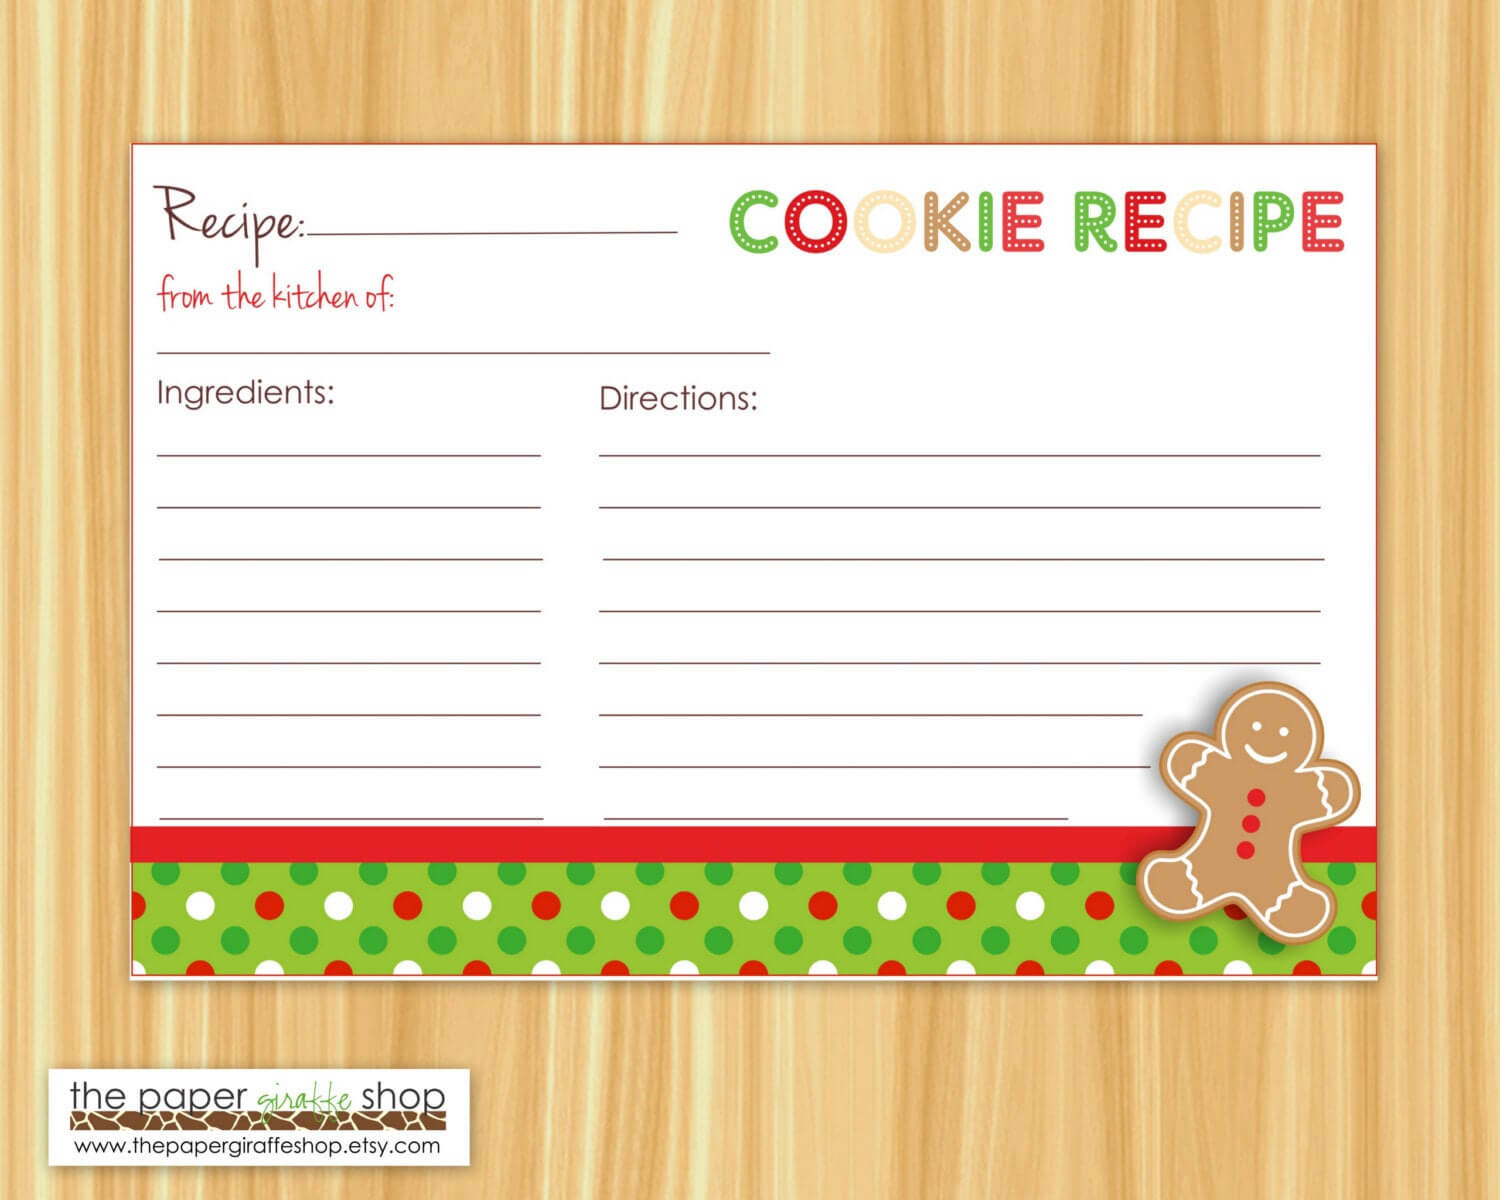 Cookie Exchange Recipe Card Template - Atlantaauctionco Throughout Cookie Exchange Recipe Card Template